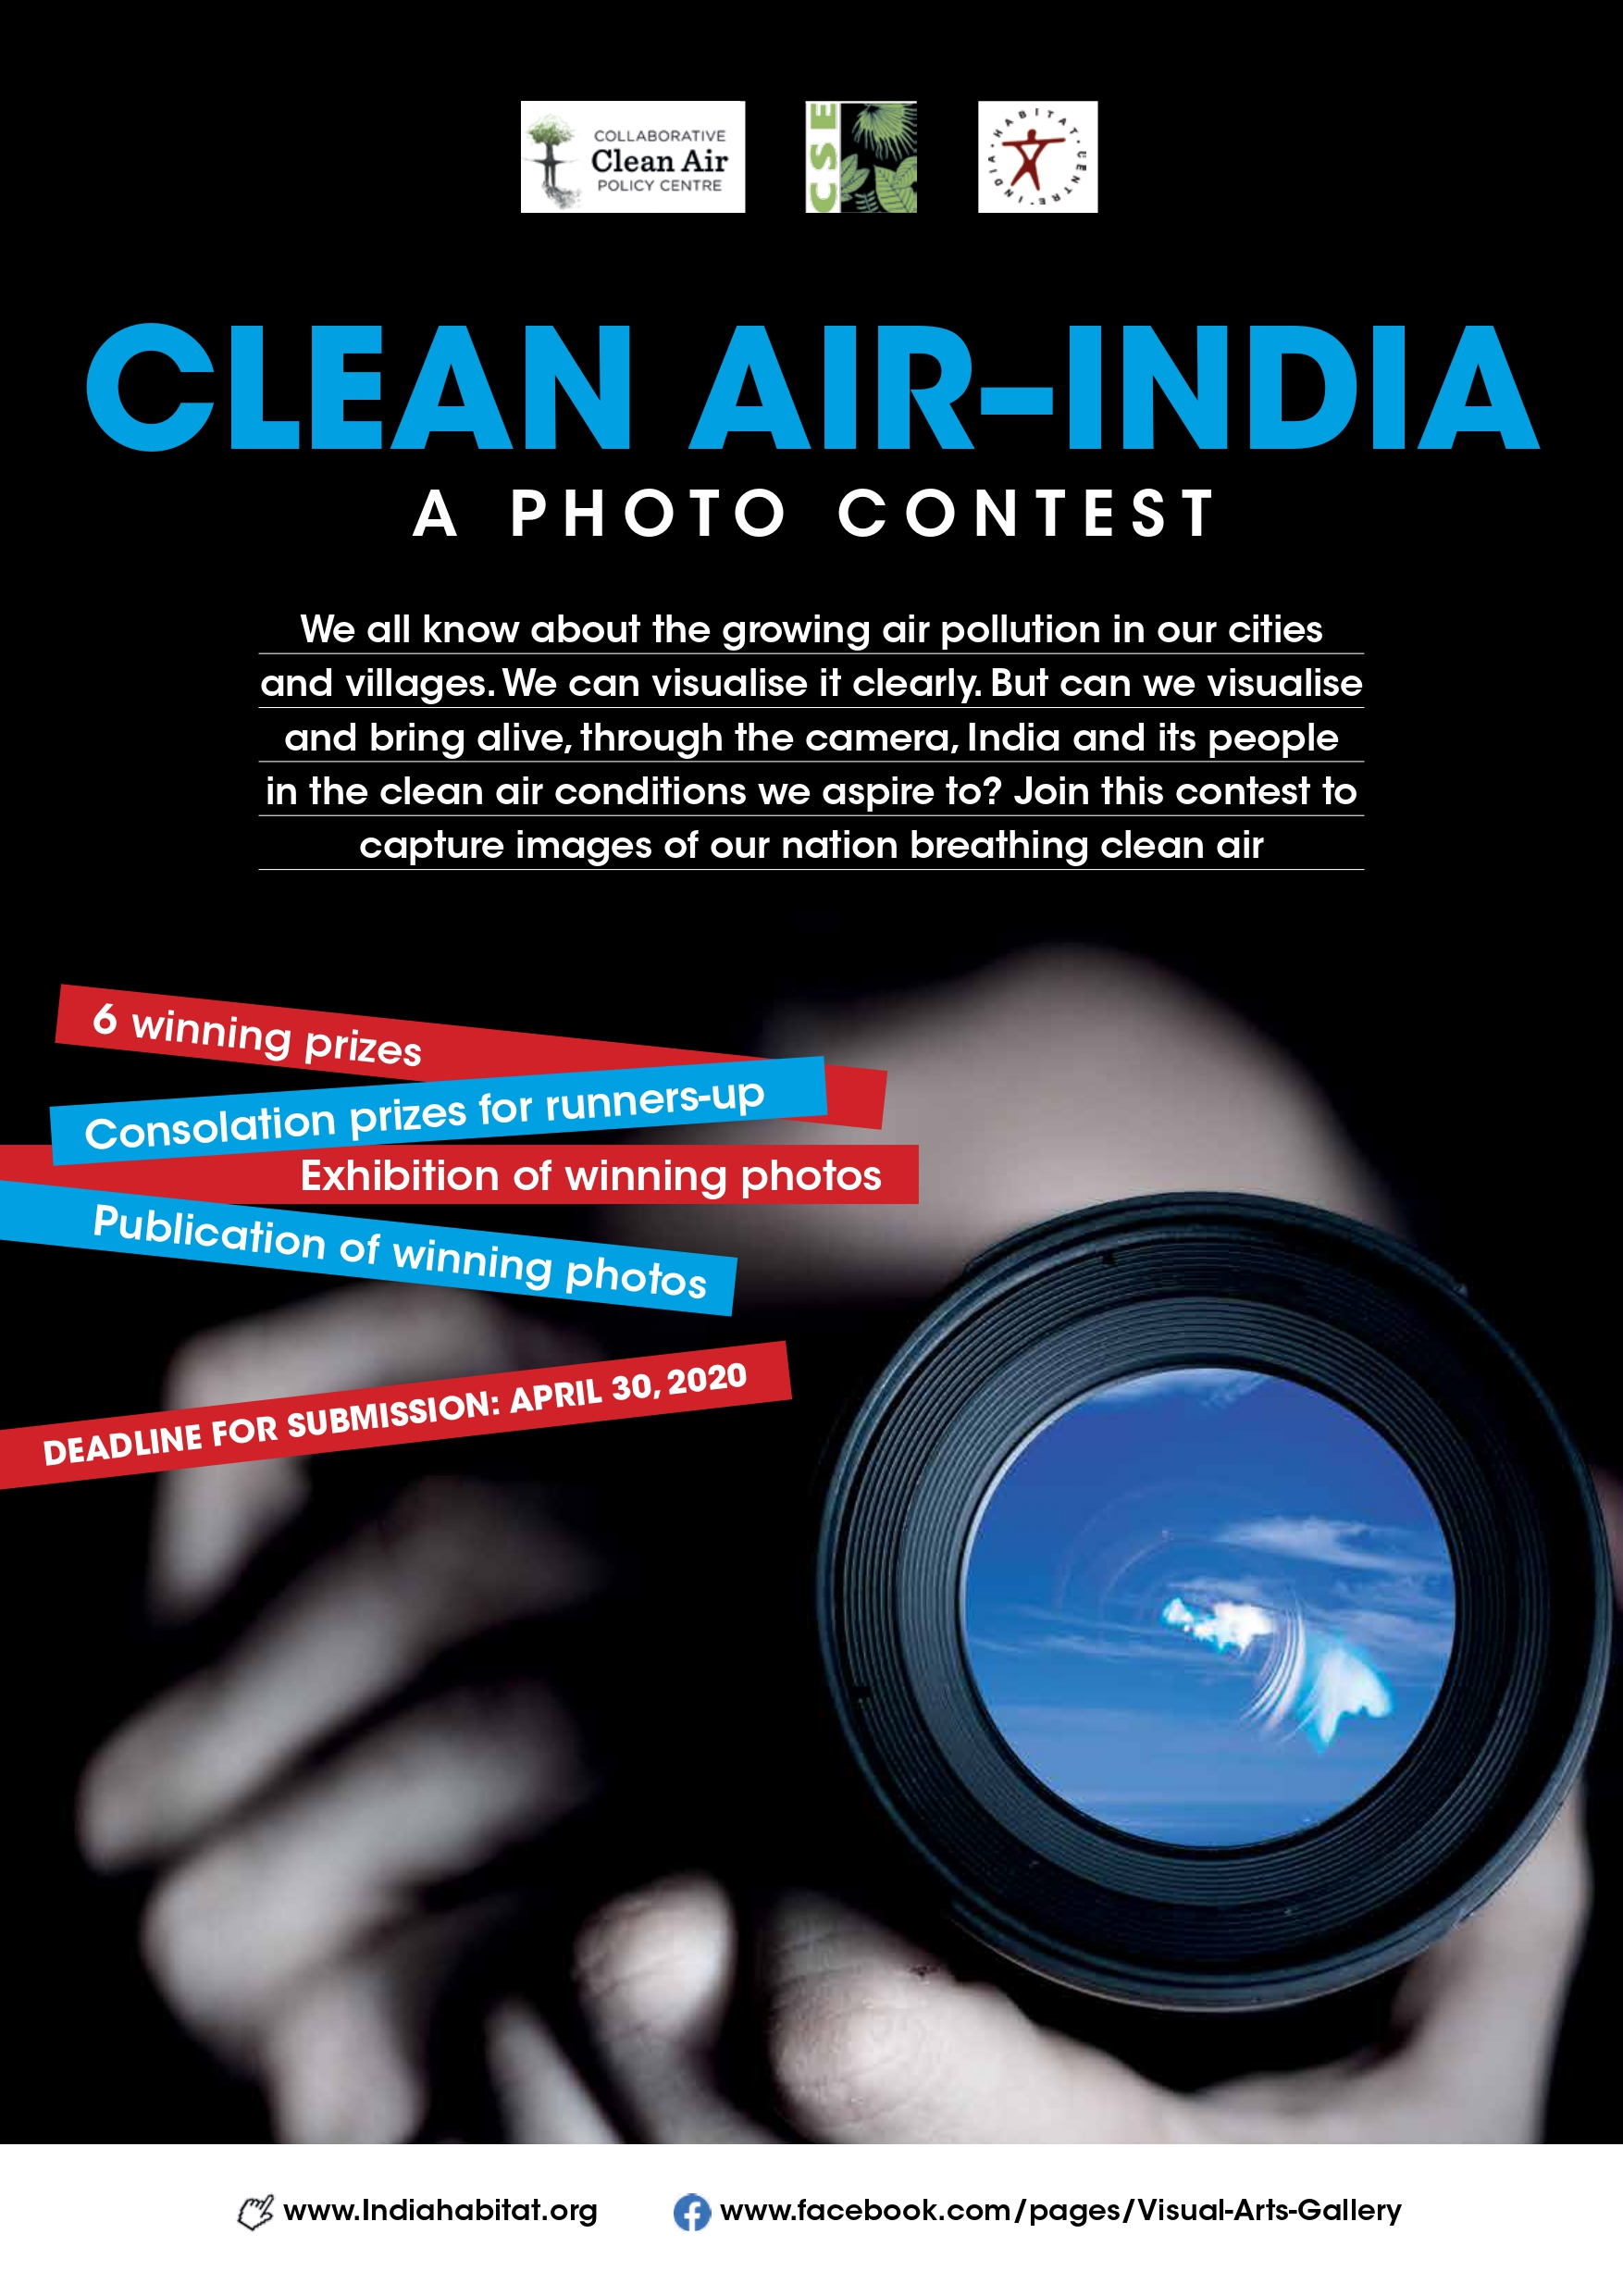 Clean Air-India – A Photo Contest